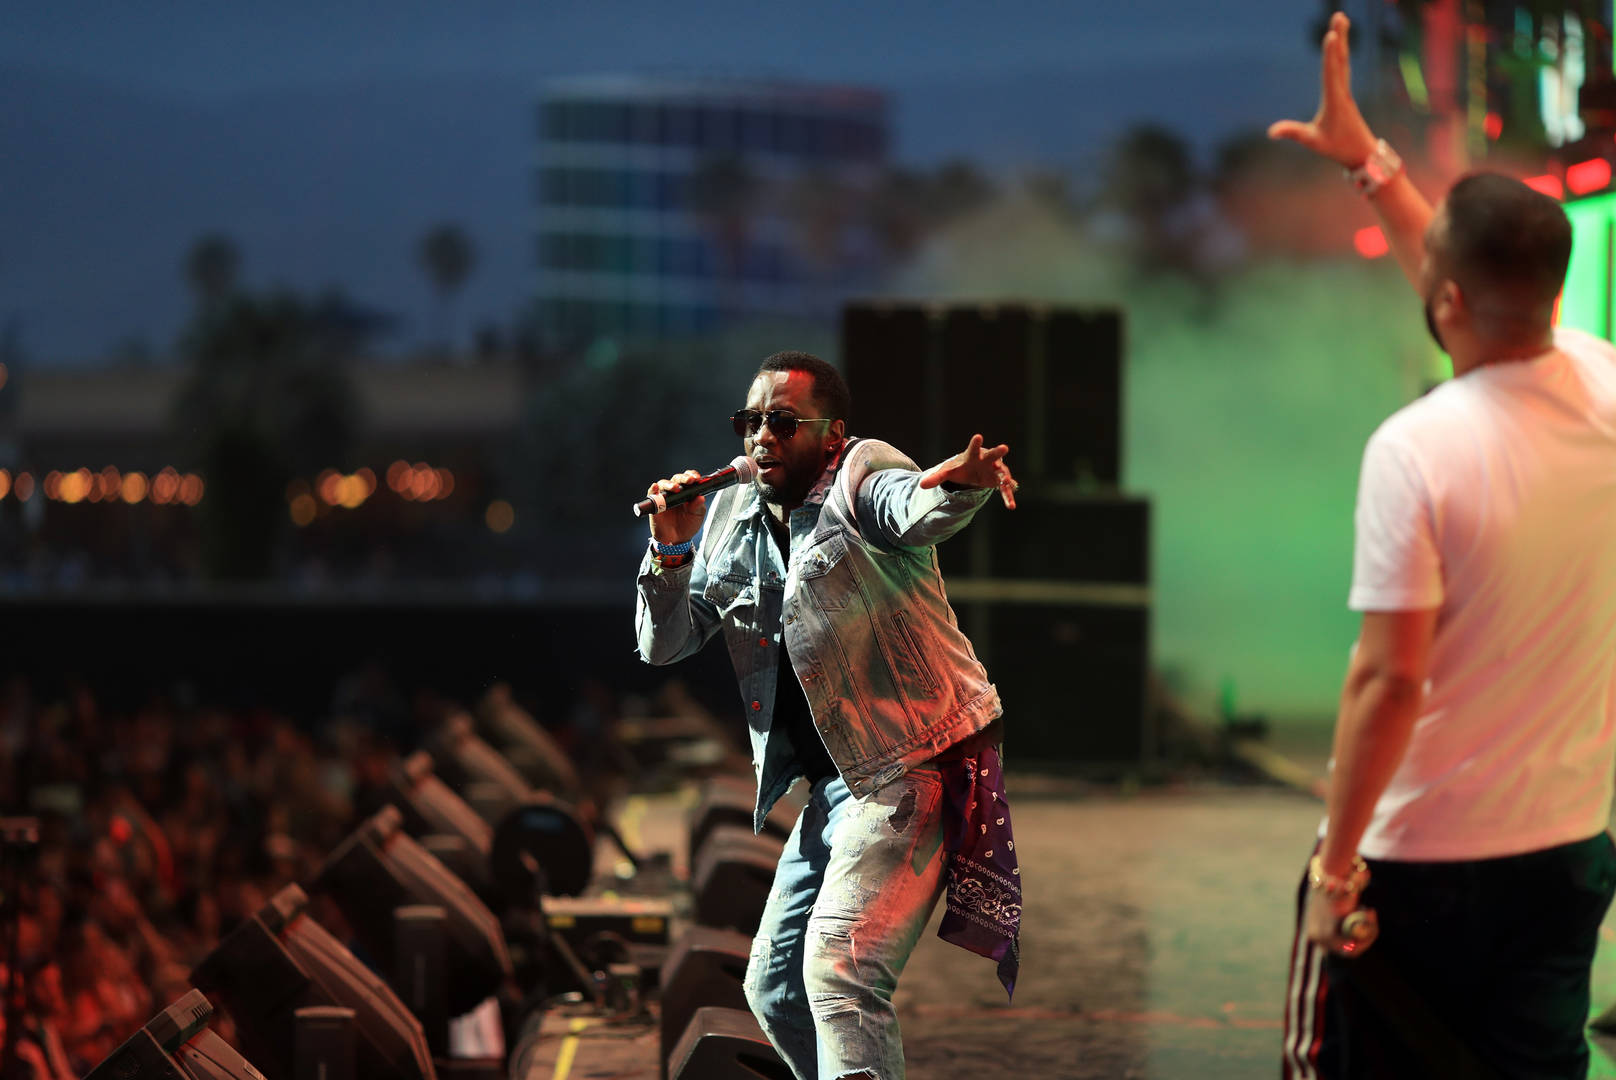 """Sean """"Diddy"""" Combs performs with French Montana onstage during the 2018 Coachella Valley Music and Arts Festival Weekend 1 at the Empire Polo Field on April 15, 2018 in Indio, California."""